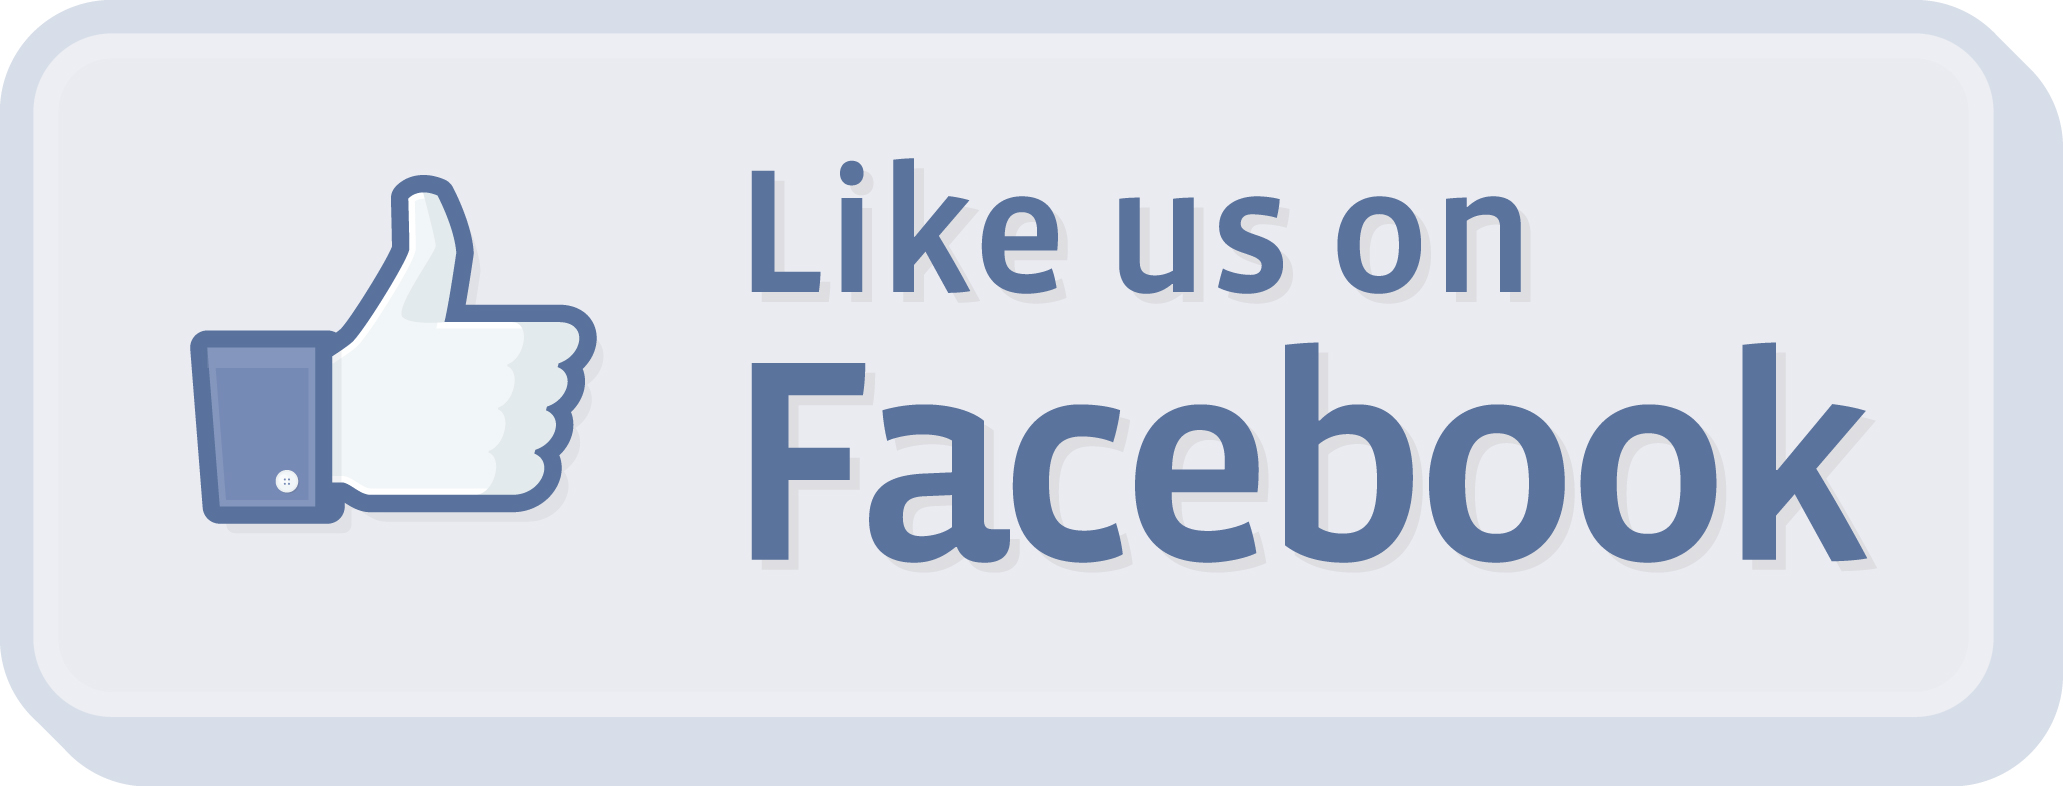 like us on facebook1